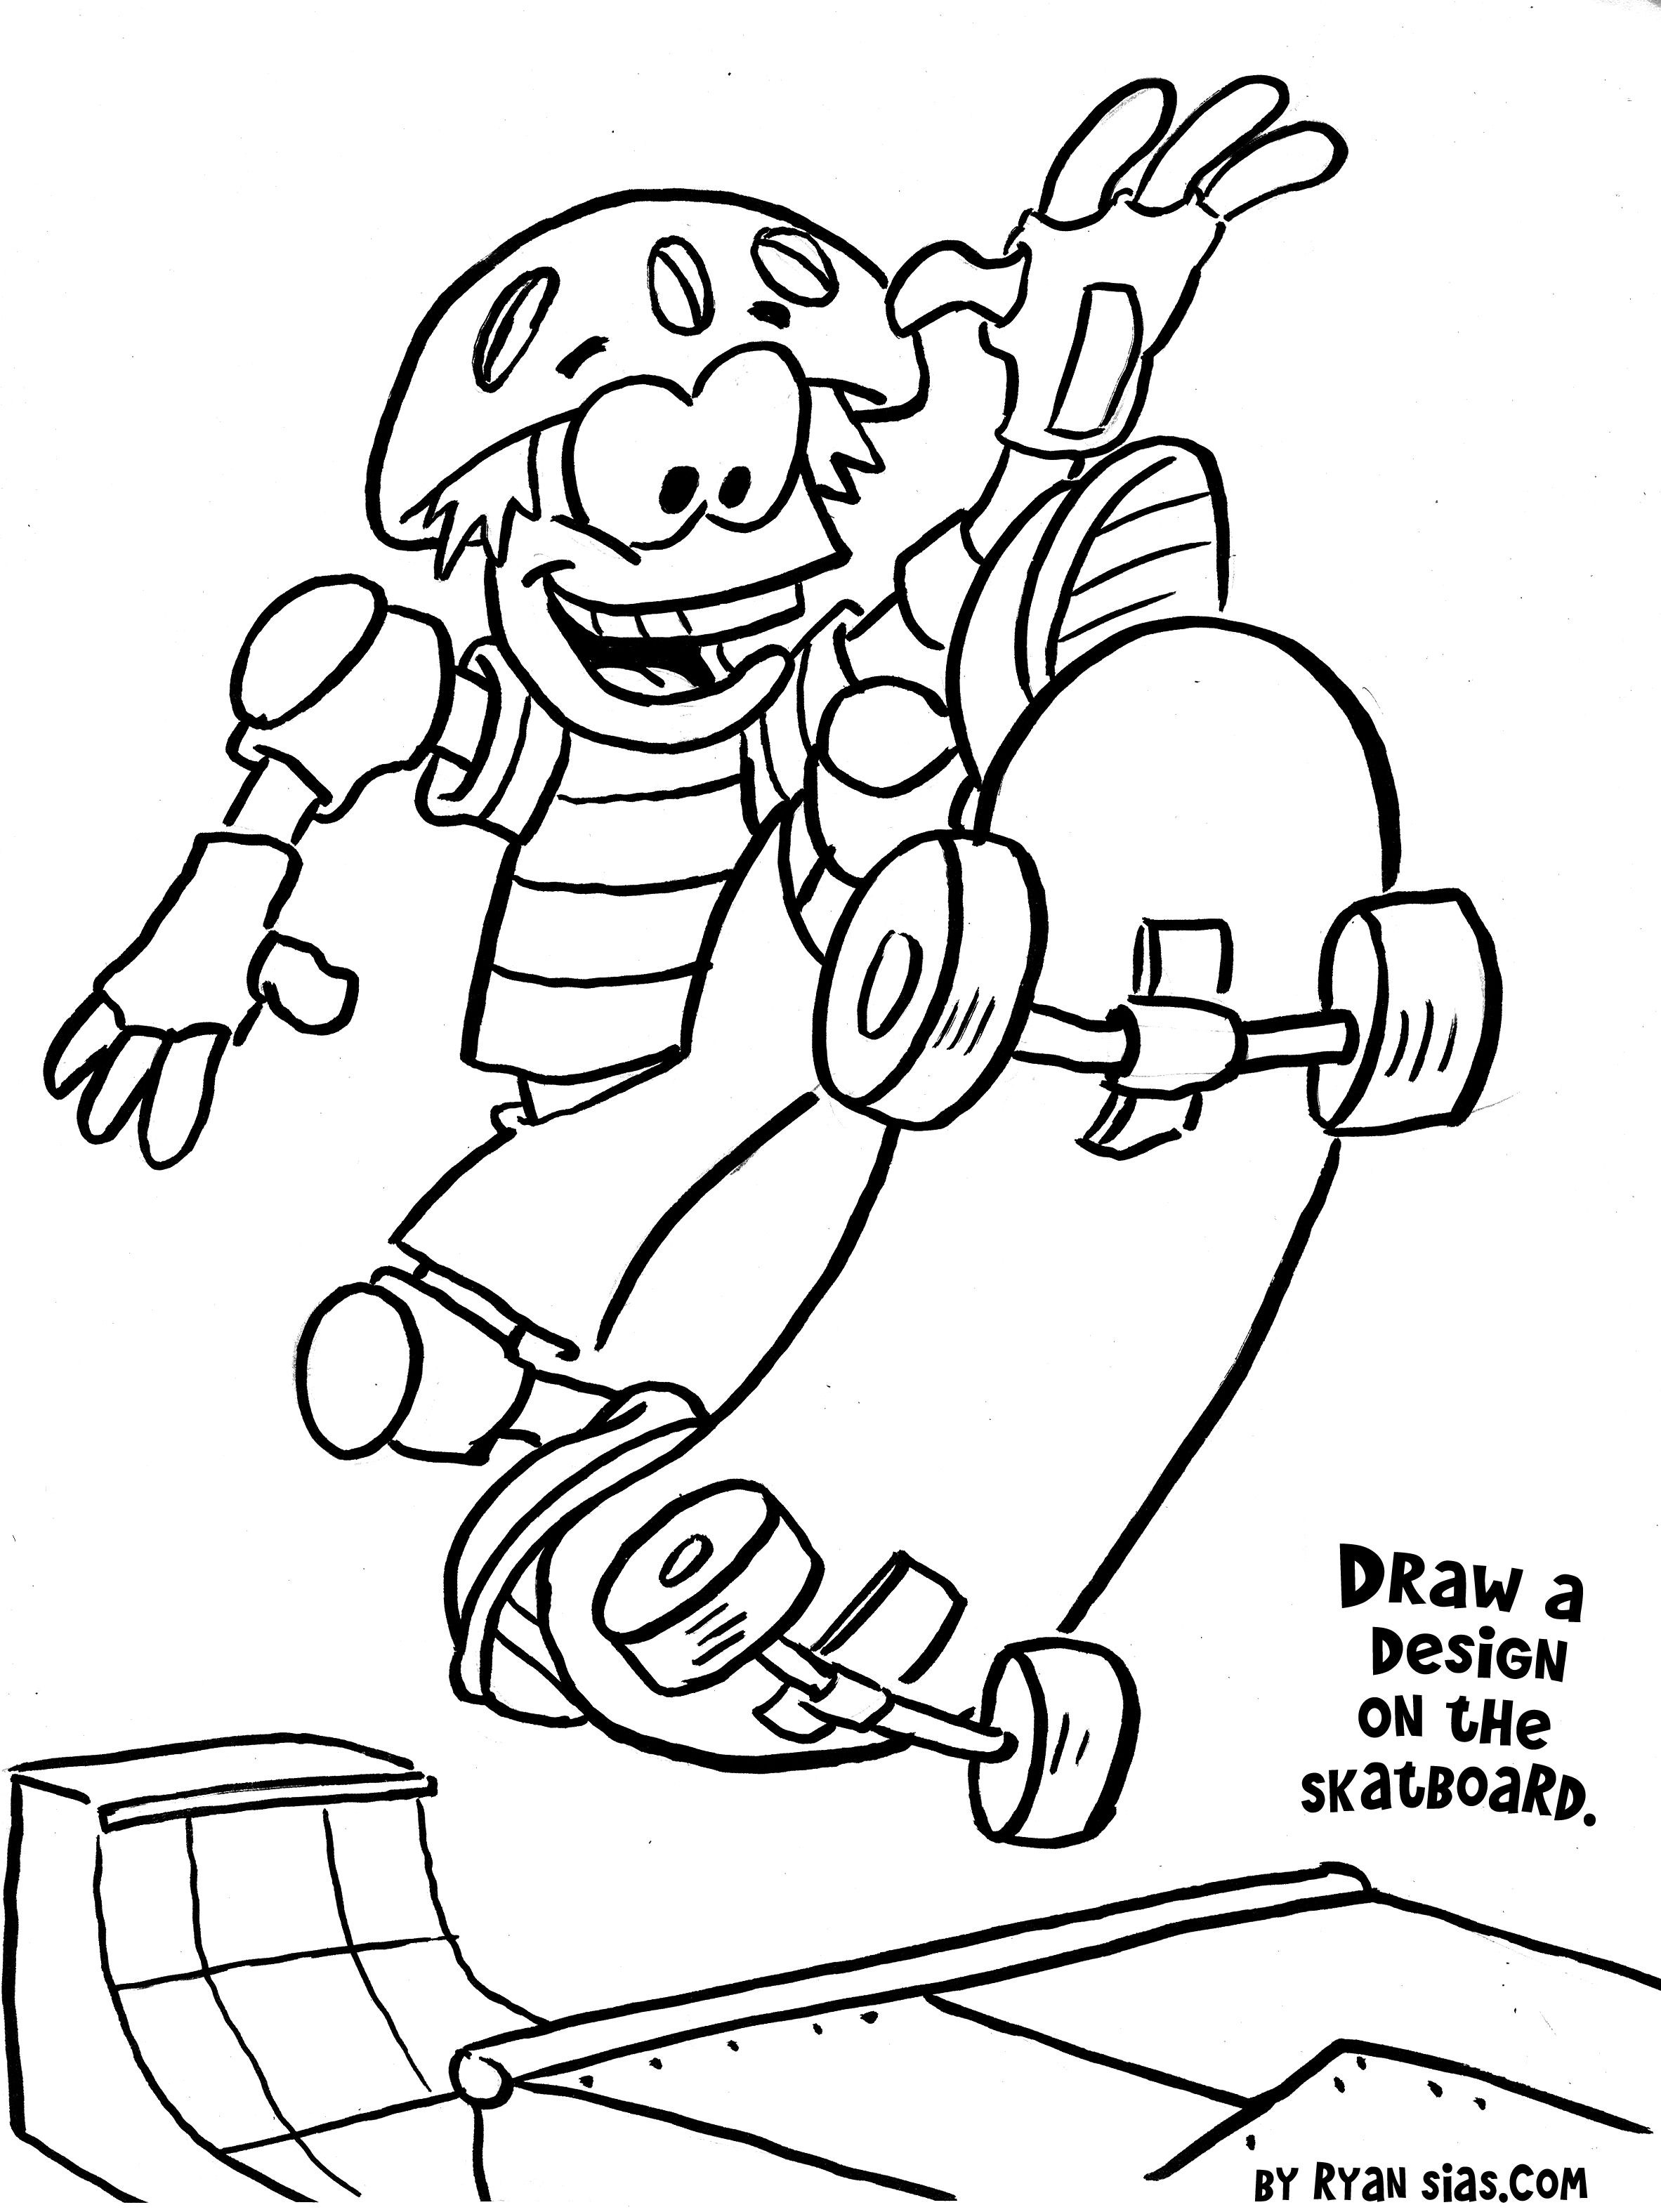 Free Printable Sports Coloring Pages Skateboard Gianfreda